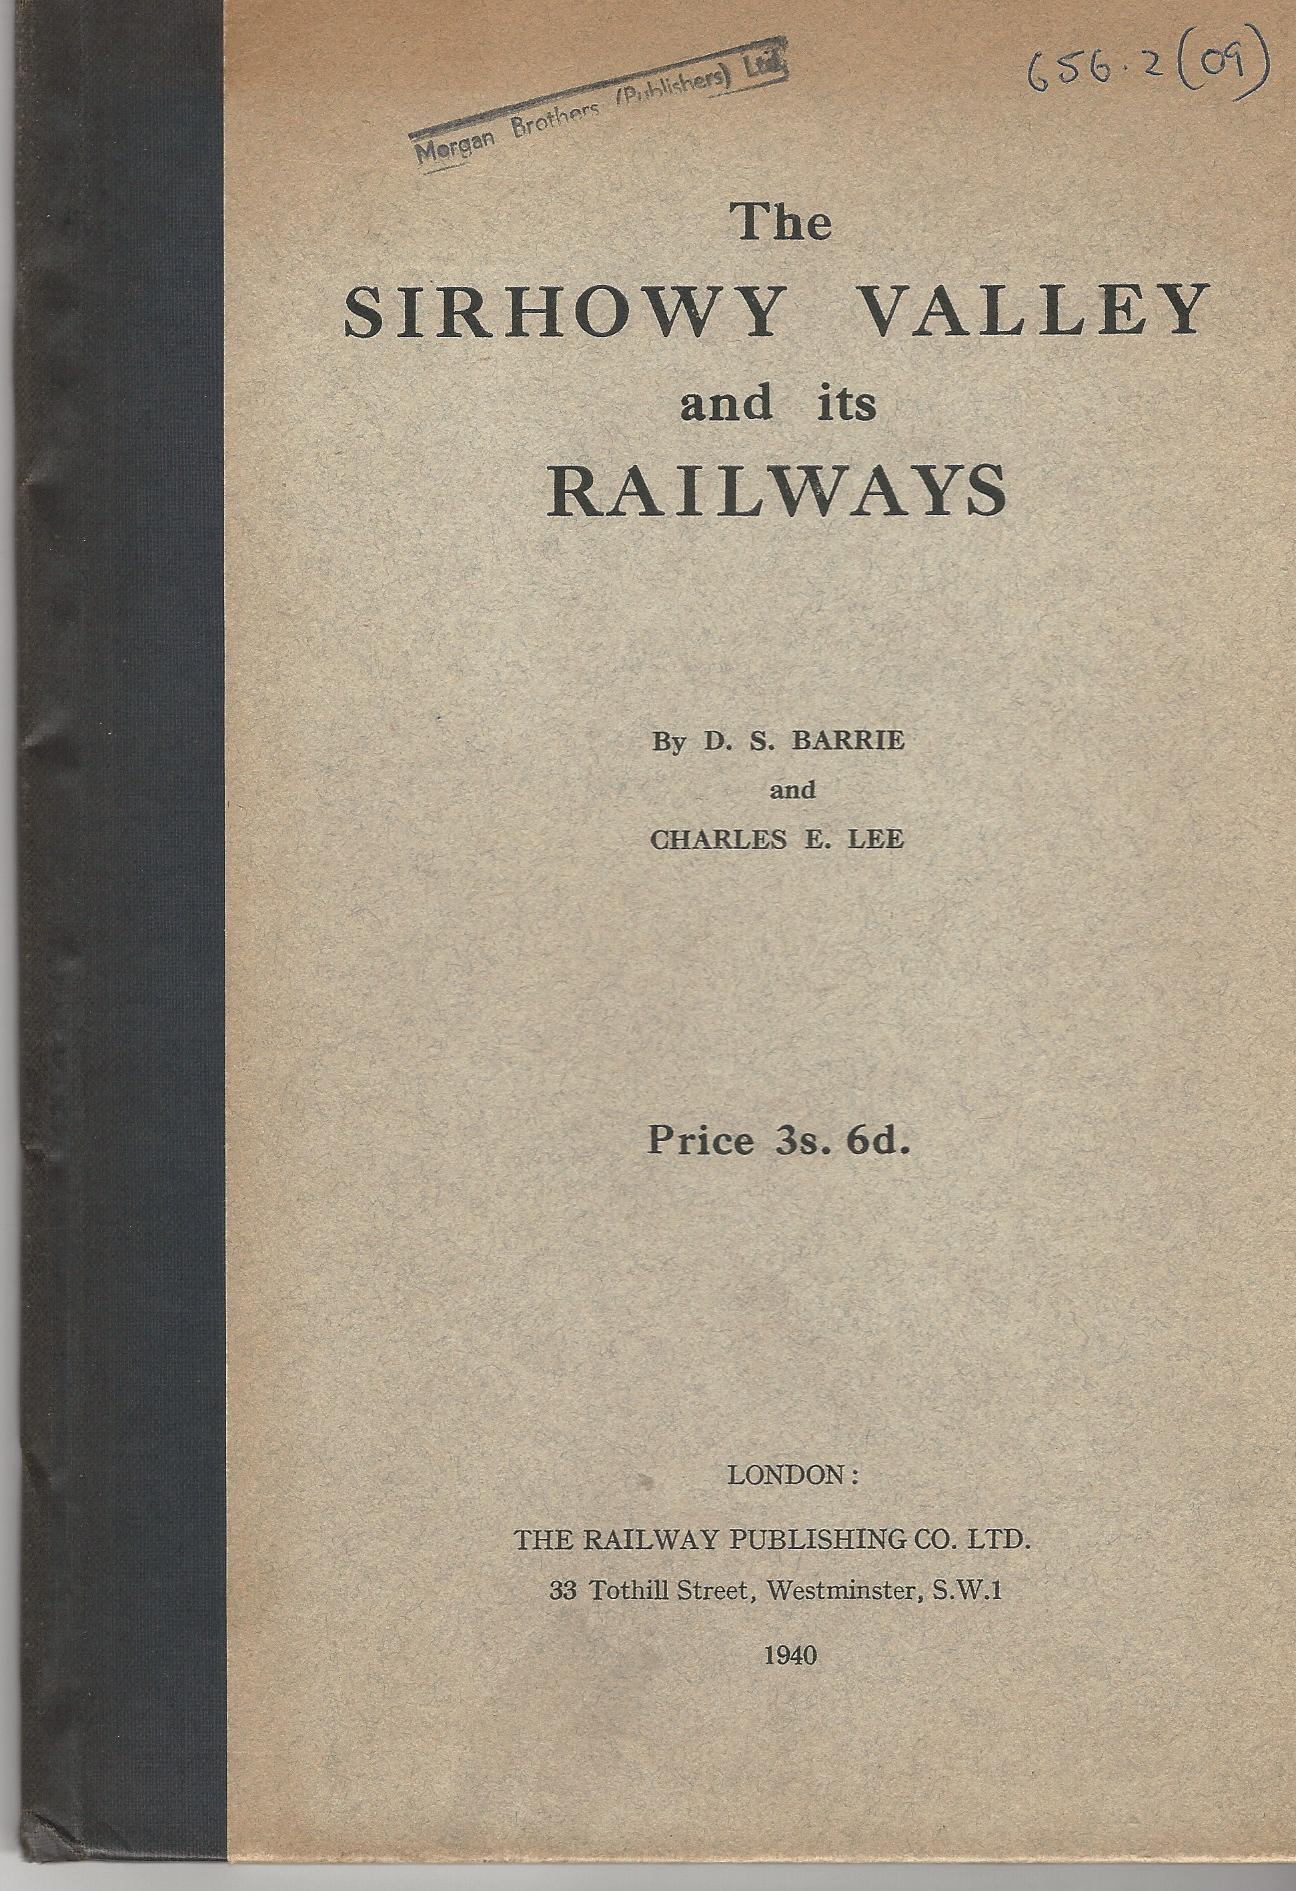 Image for The Sirhowy Valley and its Railways.